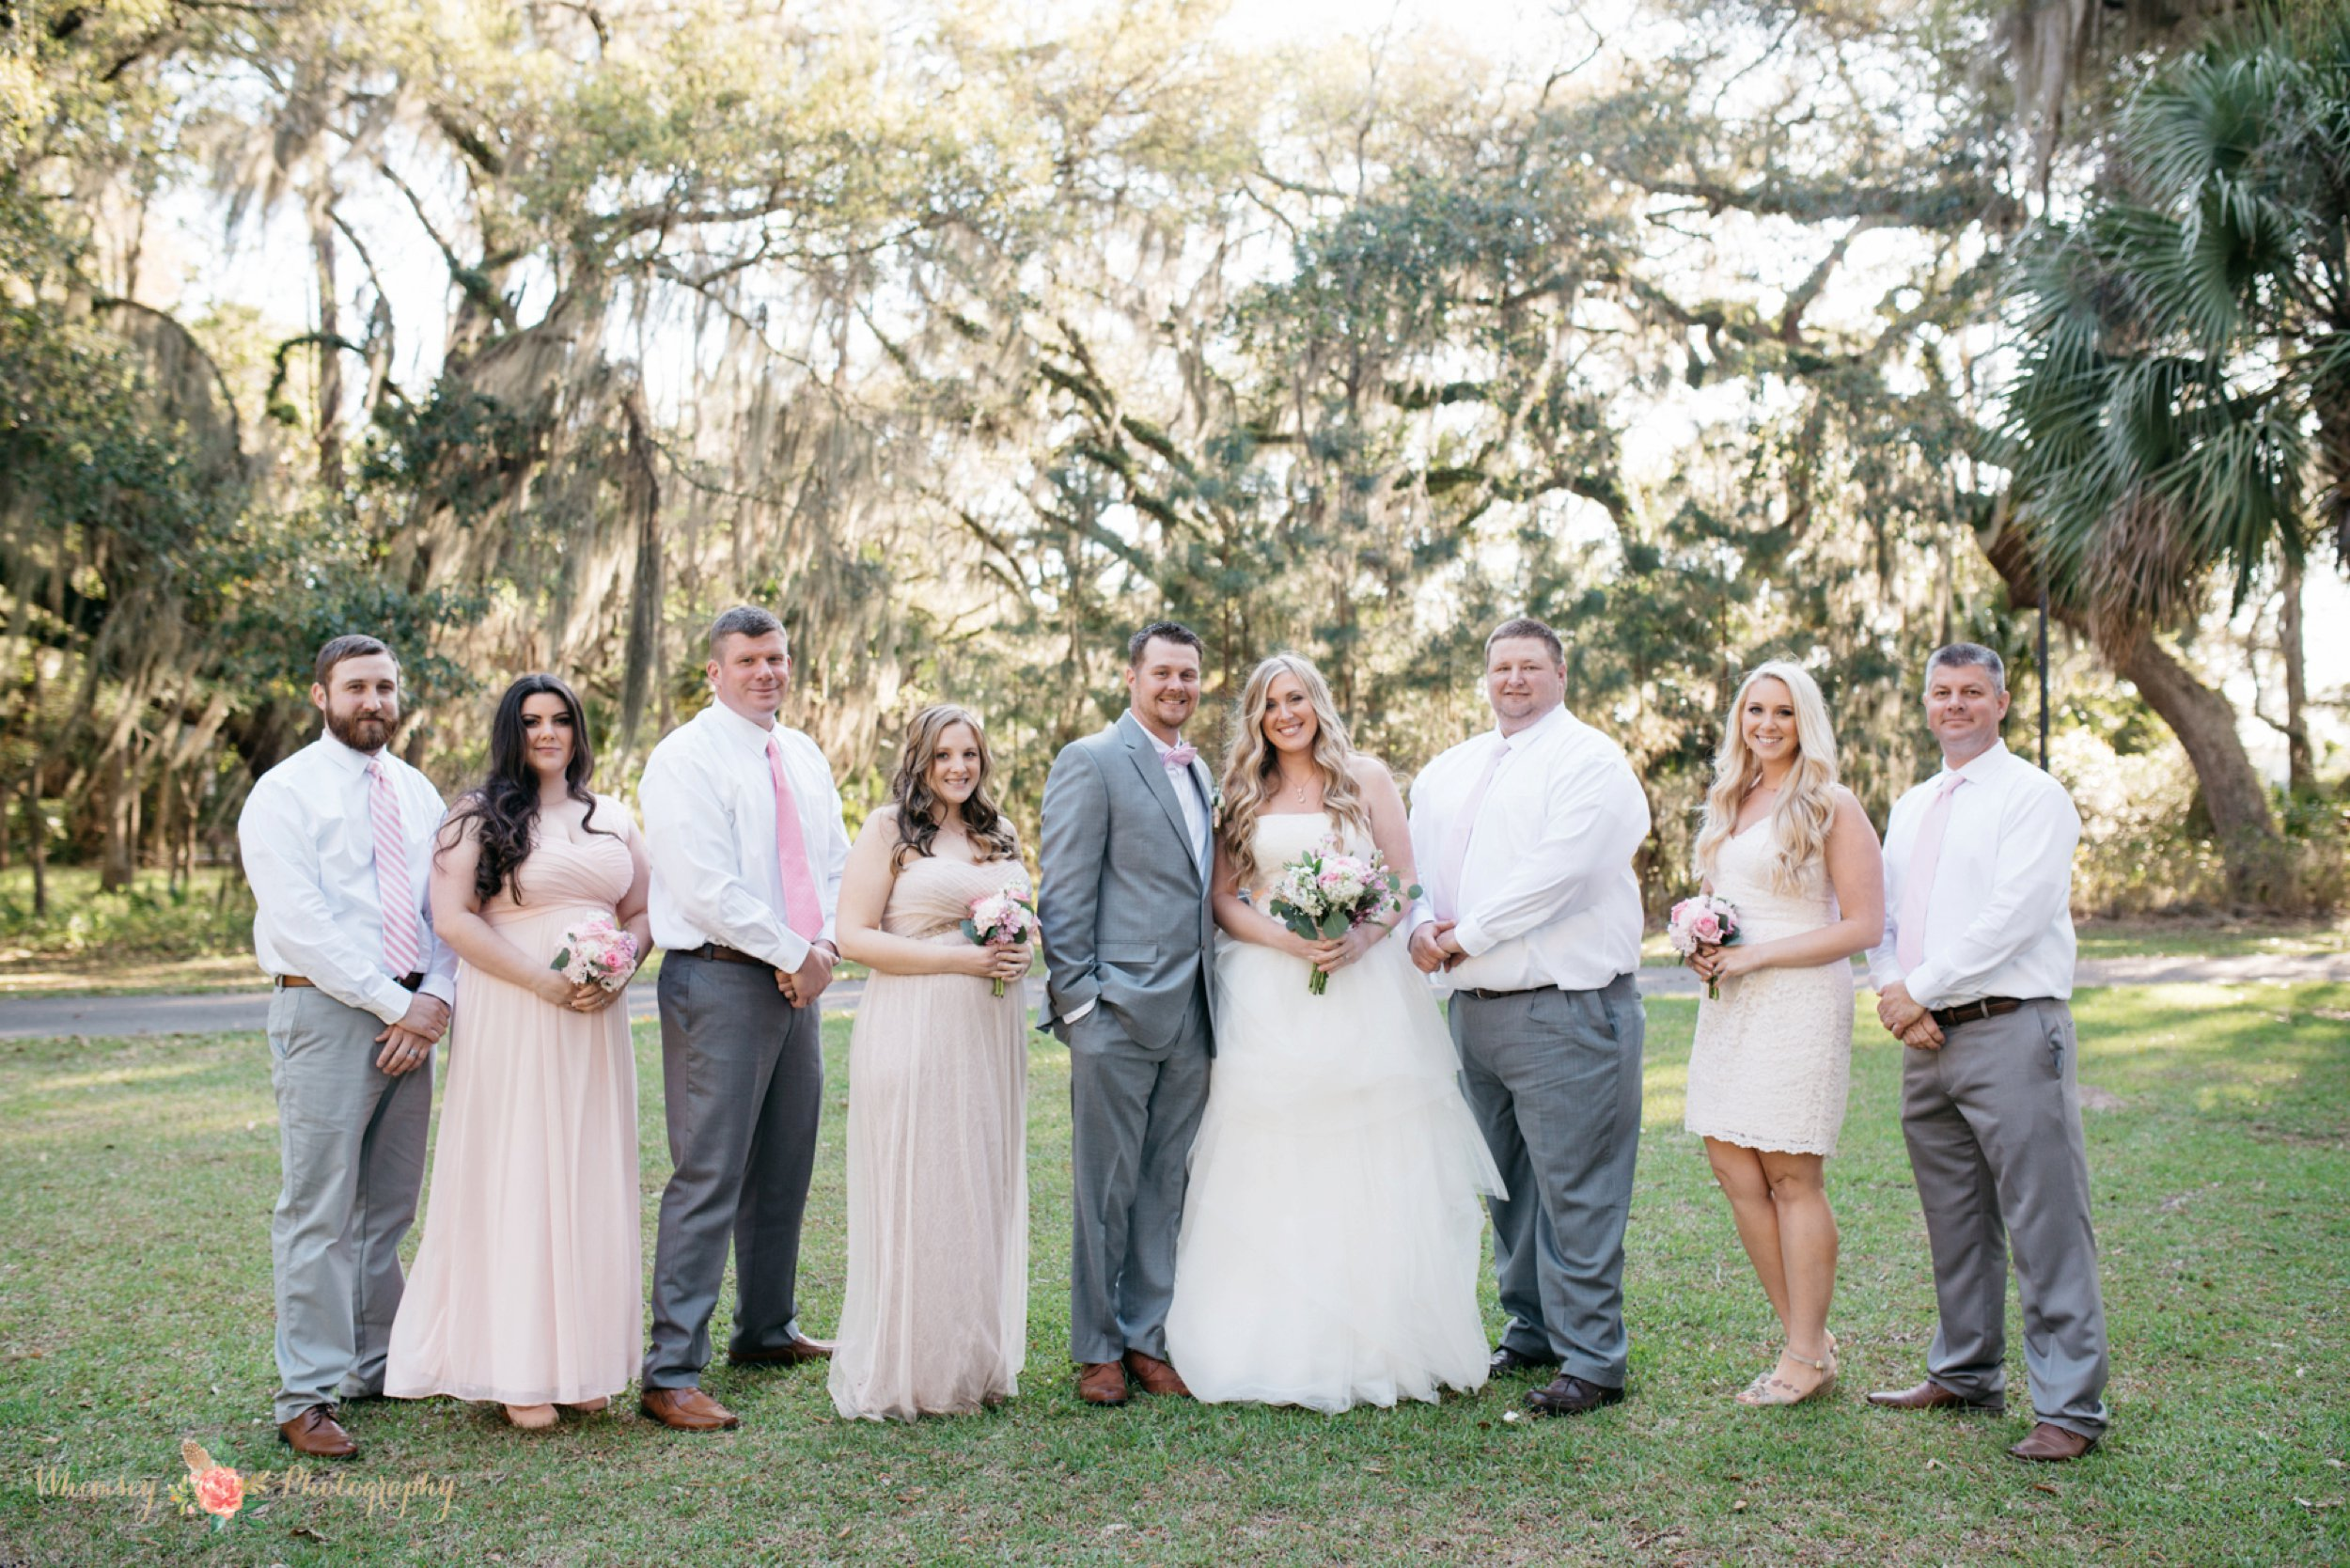 Charleston-wedding-photographer-42.jpg